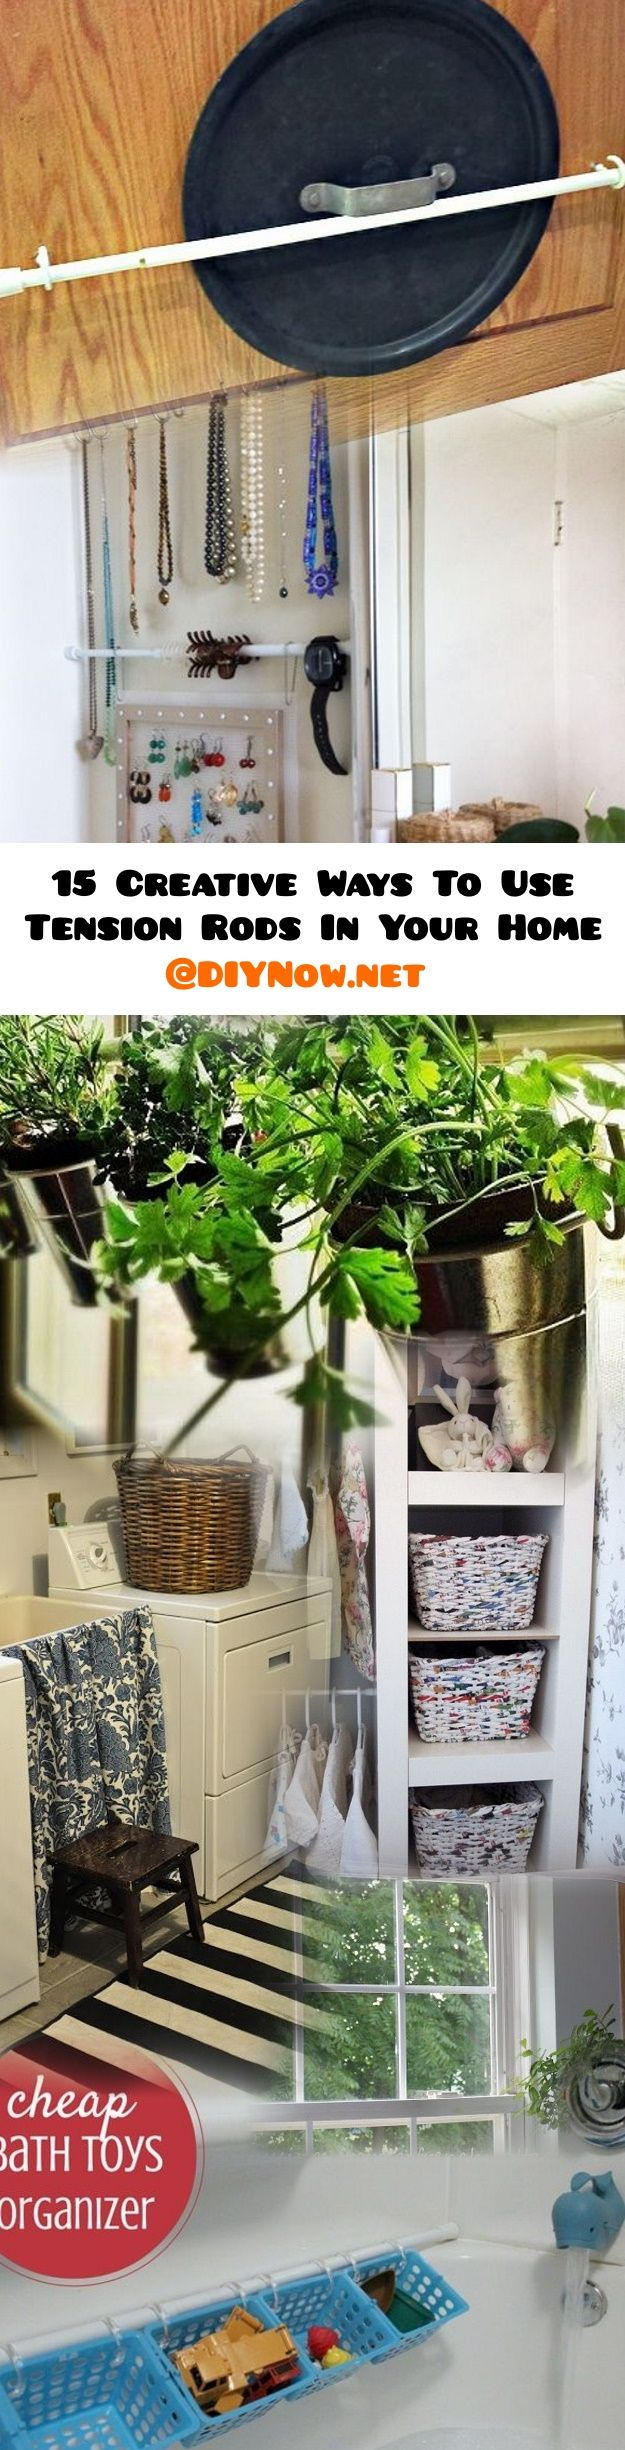 15 Creative Ways To Use Tension Rods In Your Home